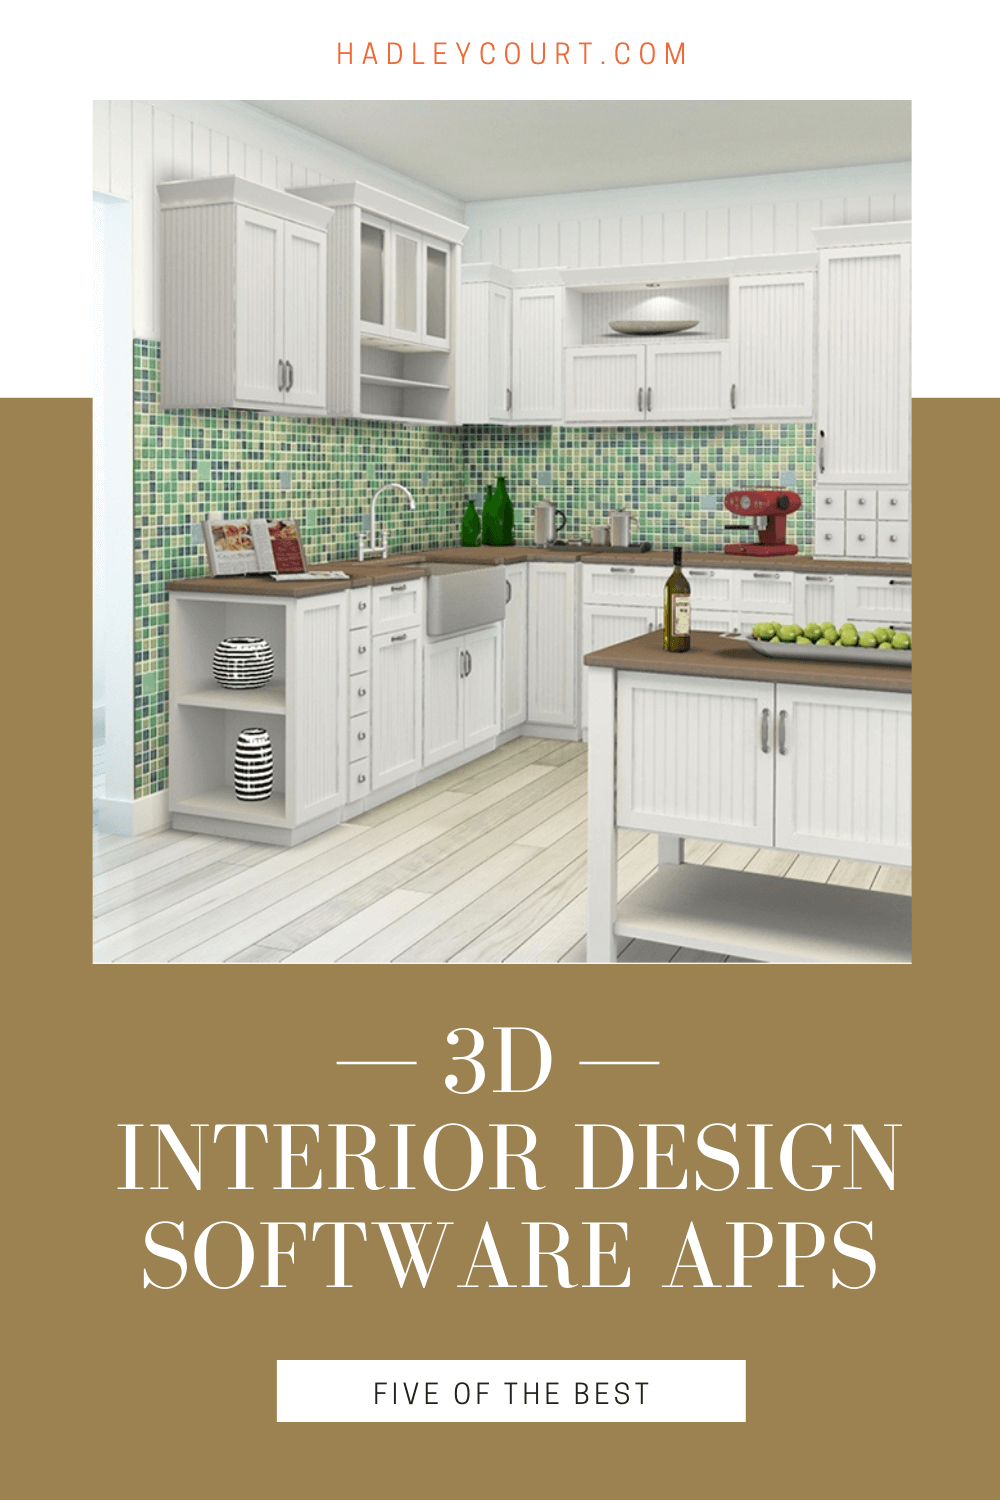 Compared 5 Of The Best 3d Interior Design Software Apps 3d Interior Design 3d Interior Design Software Interior Design Software